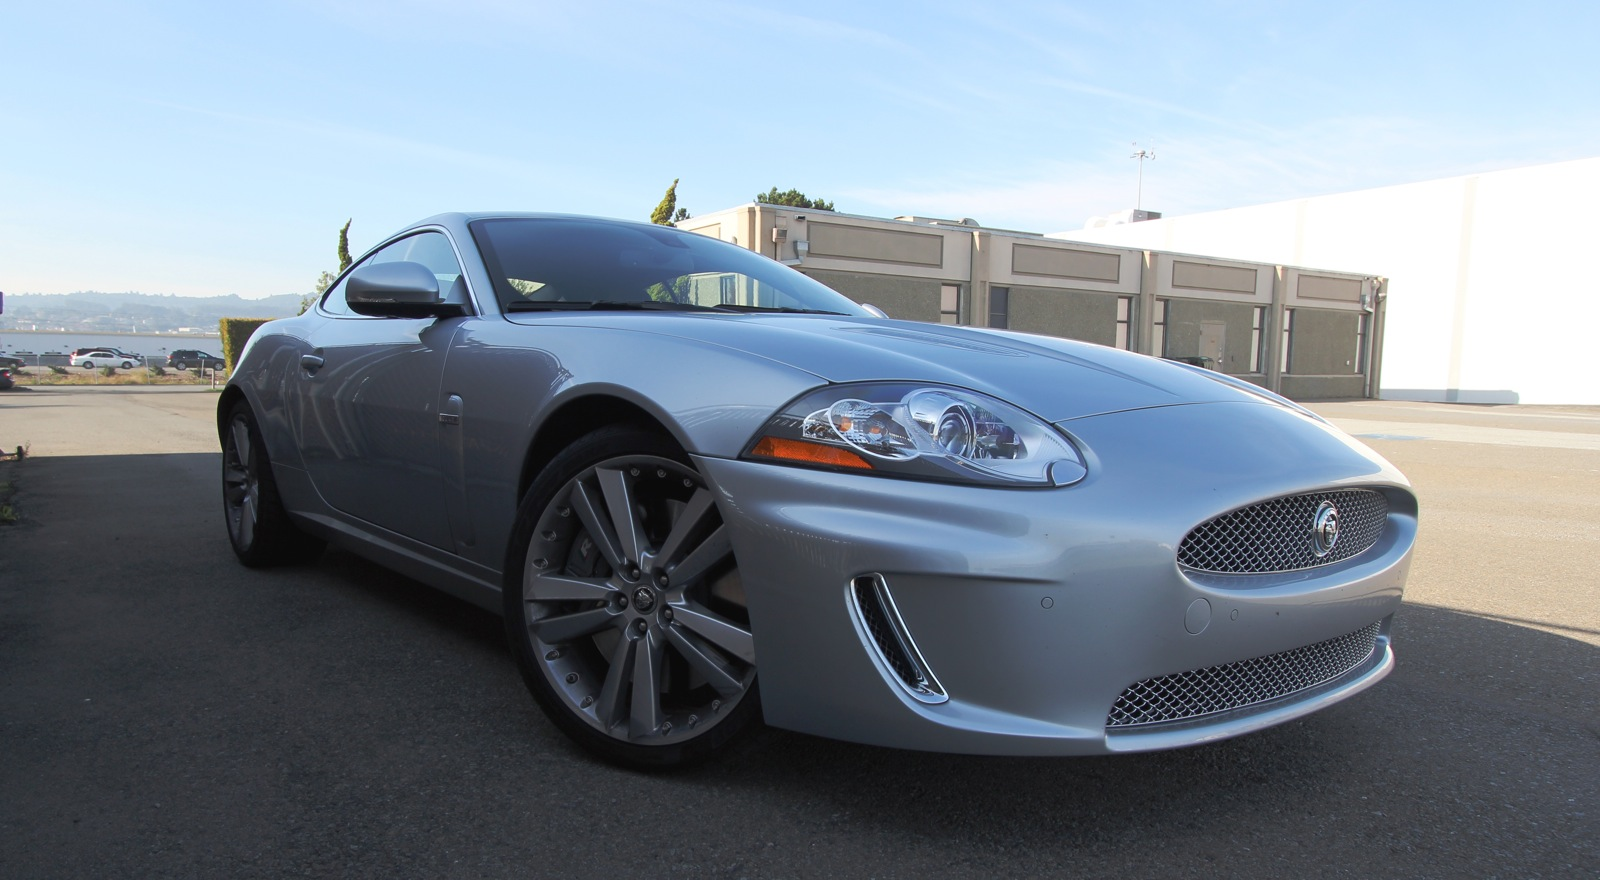 review 2011 jaguar xkr the truth about cars rh thetruthaboutcars com 2011 Jaguar XKR Coupe 2006 Jaguar XKR